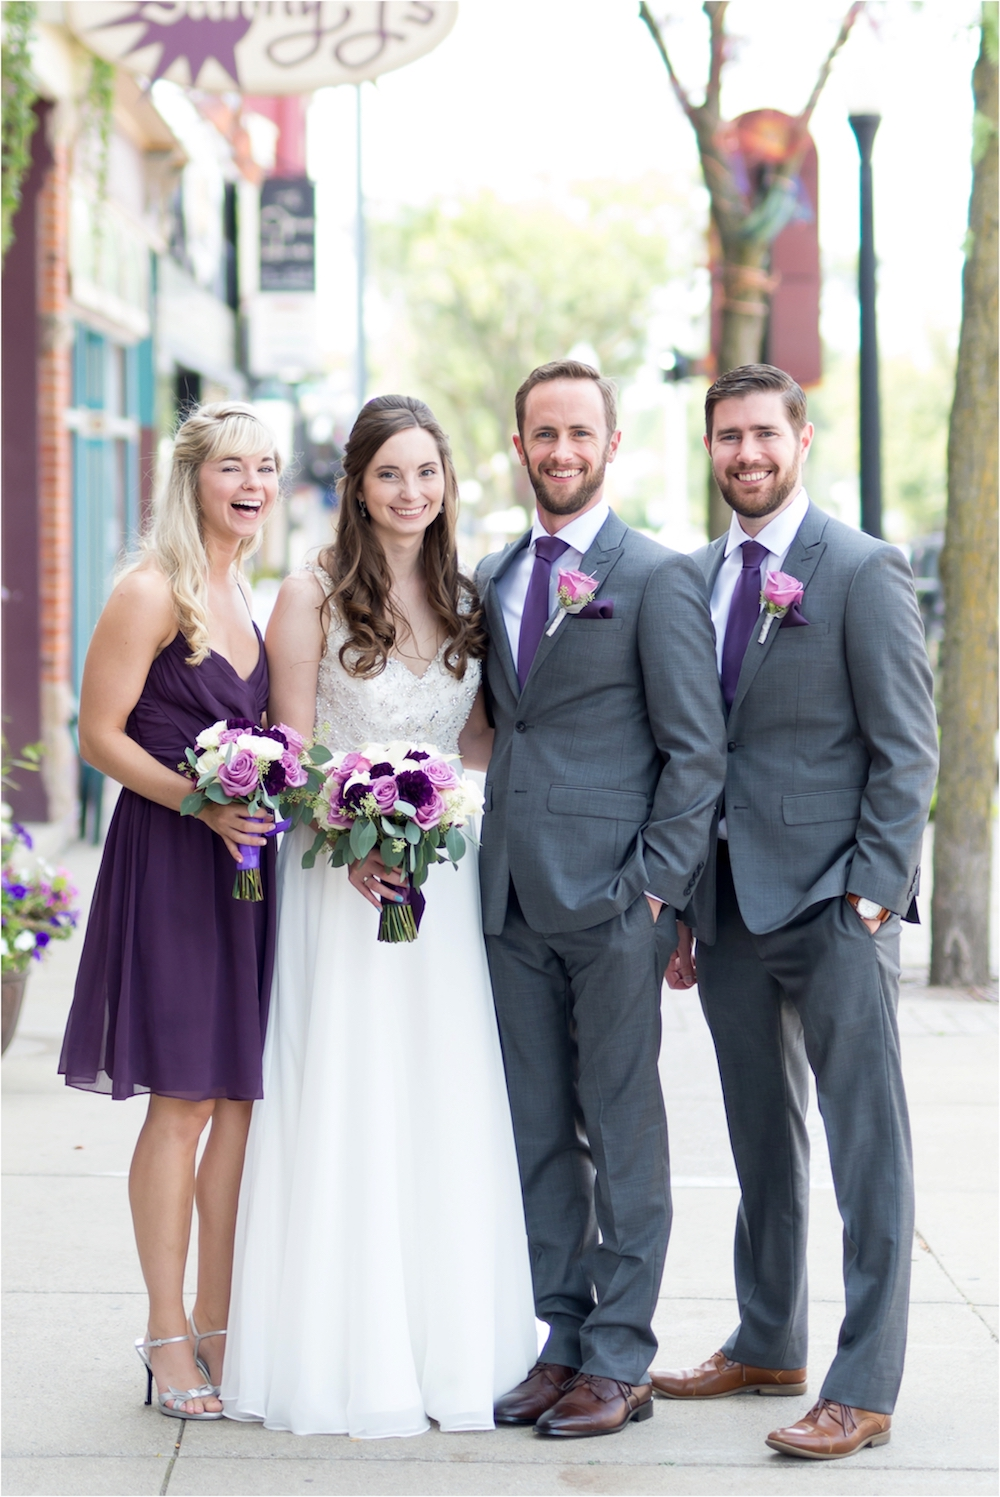 crystal-gardens-howell-michigan-downtown-howell-alley-wedding-photo-90.jpg